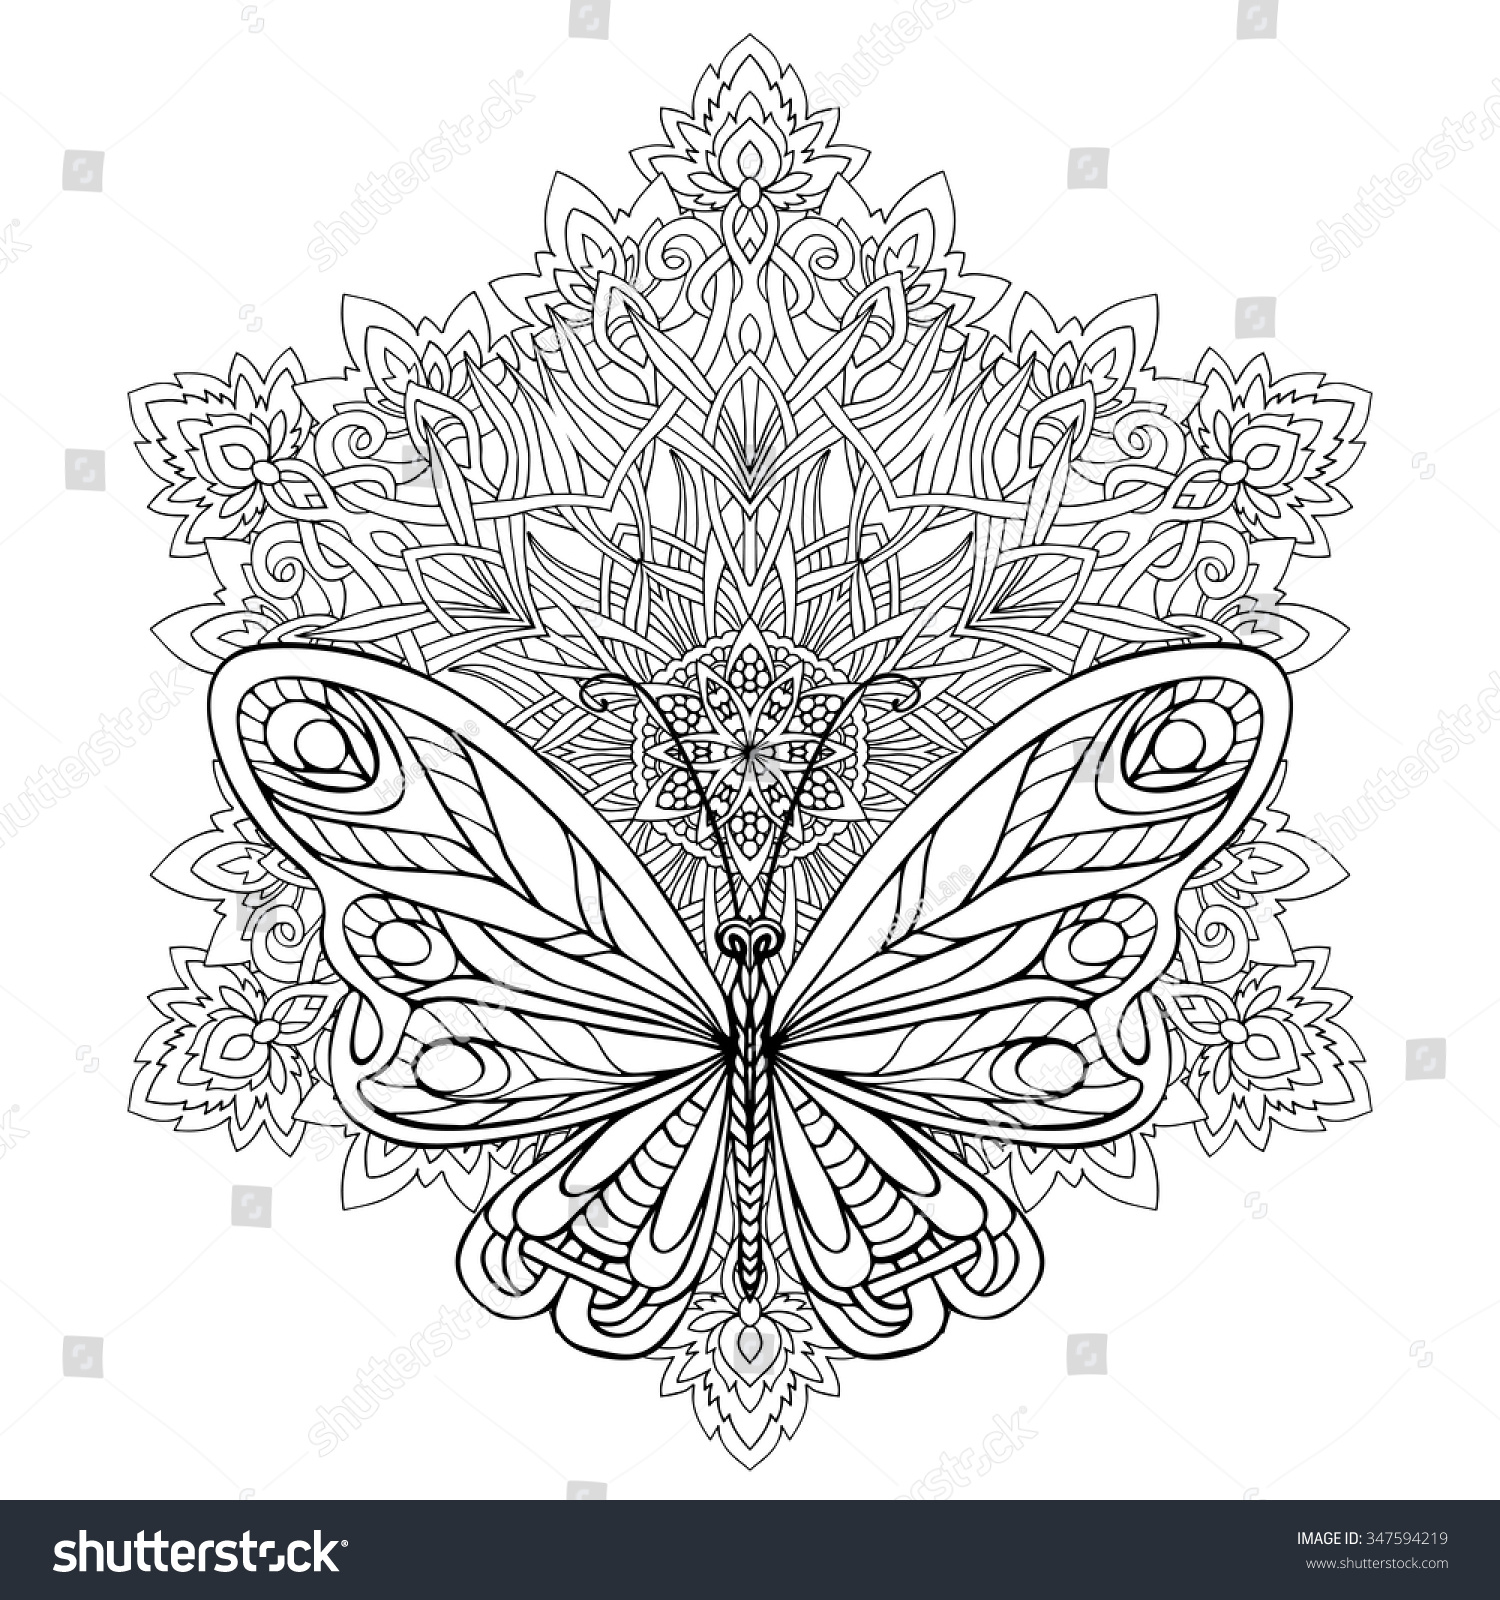 Butterfly Floral Mandala Coloring Book Adult Stock Vector 347594219 ...